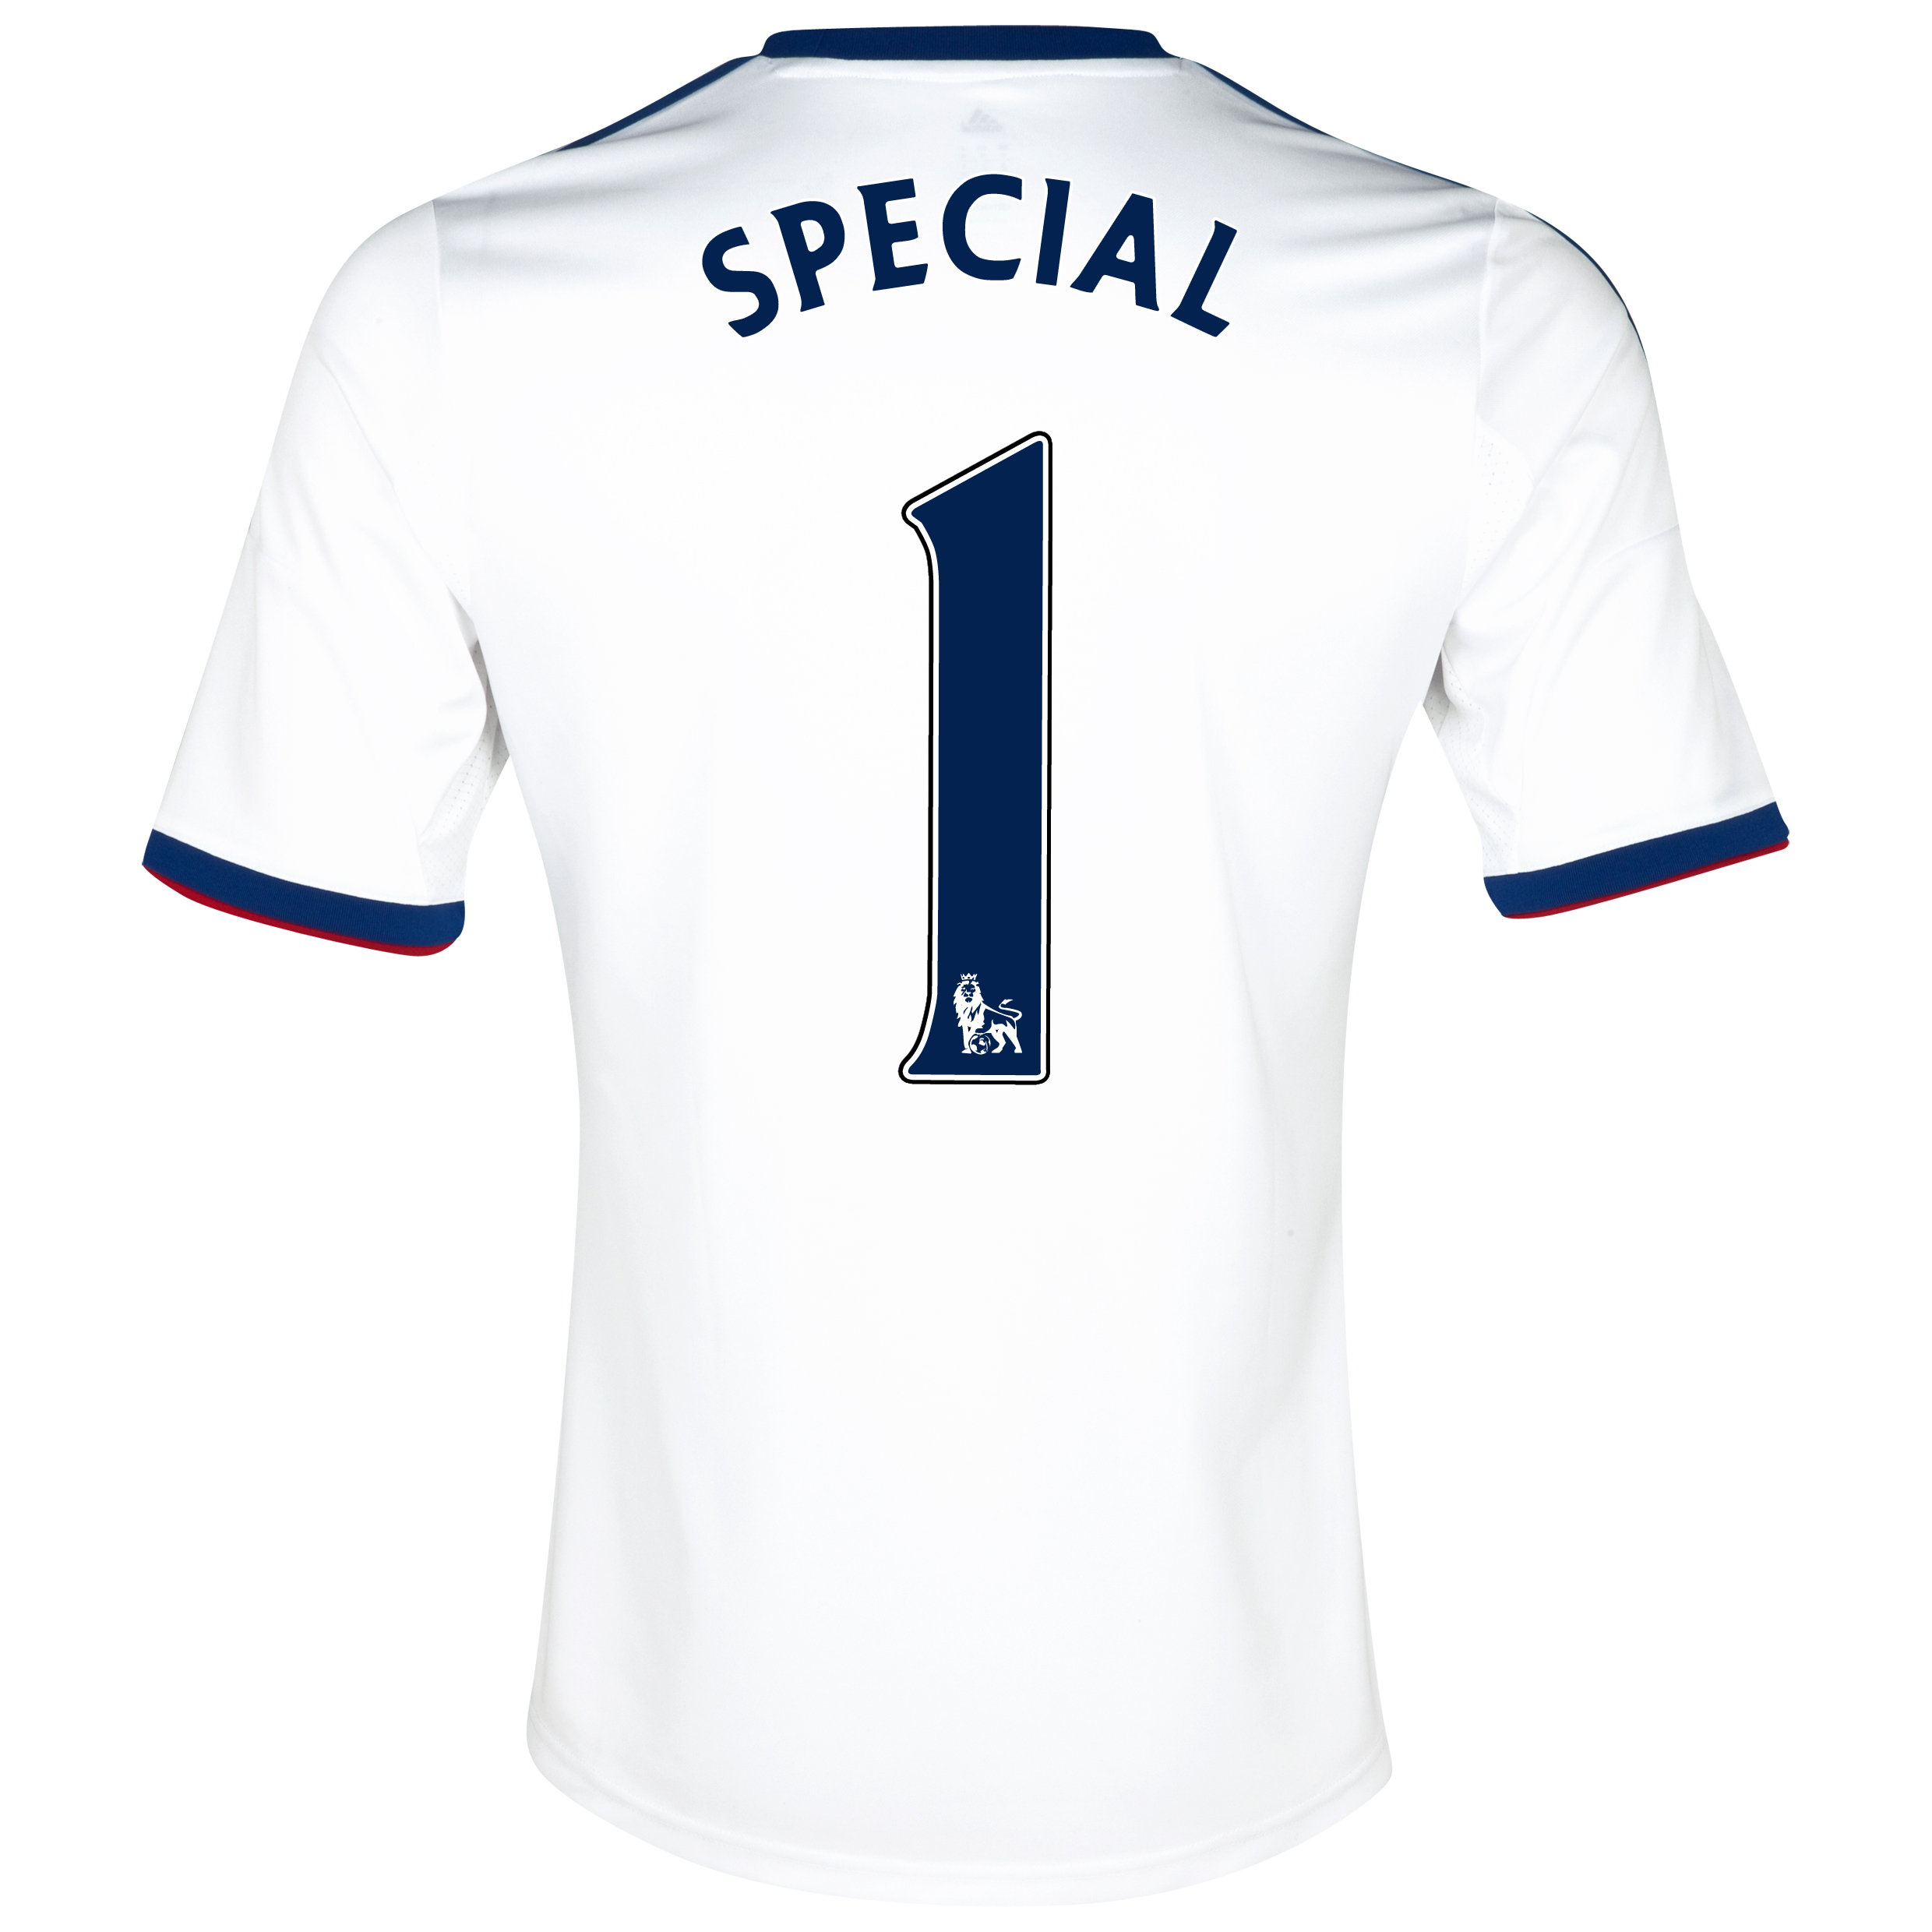 Chelsea Away Shirt 2013/14 with Special 1 printing